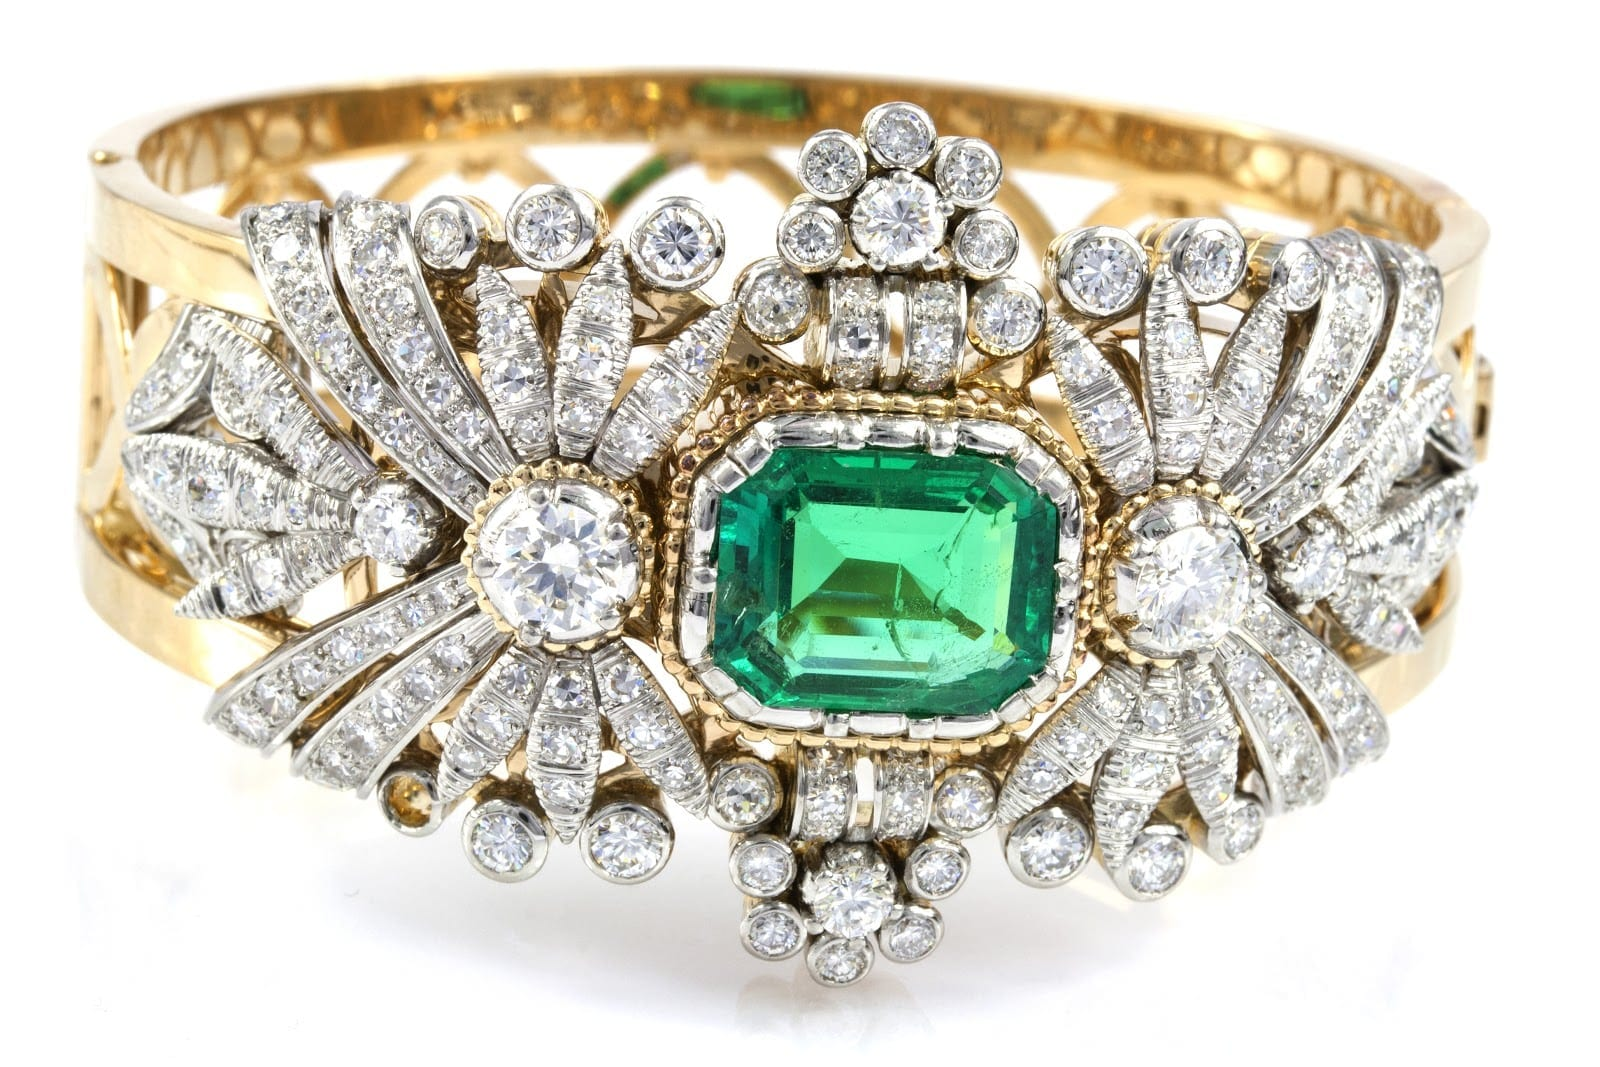 EMERALD_DIAMOND_CUFF